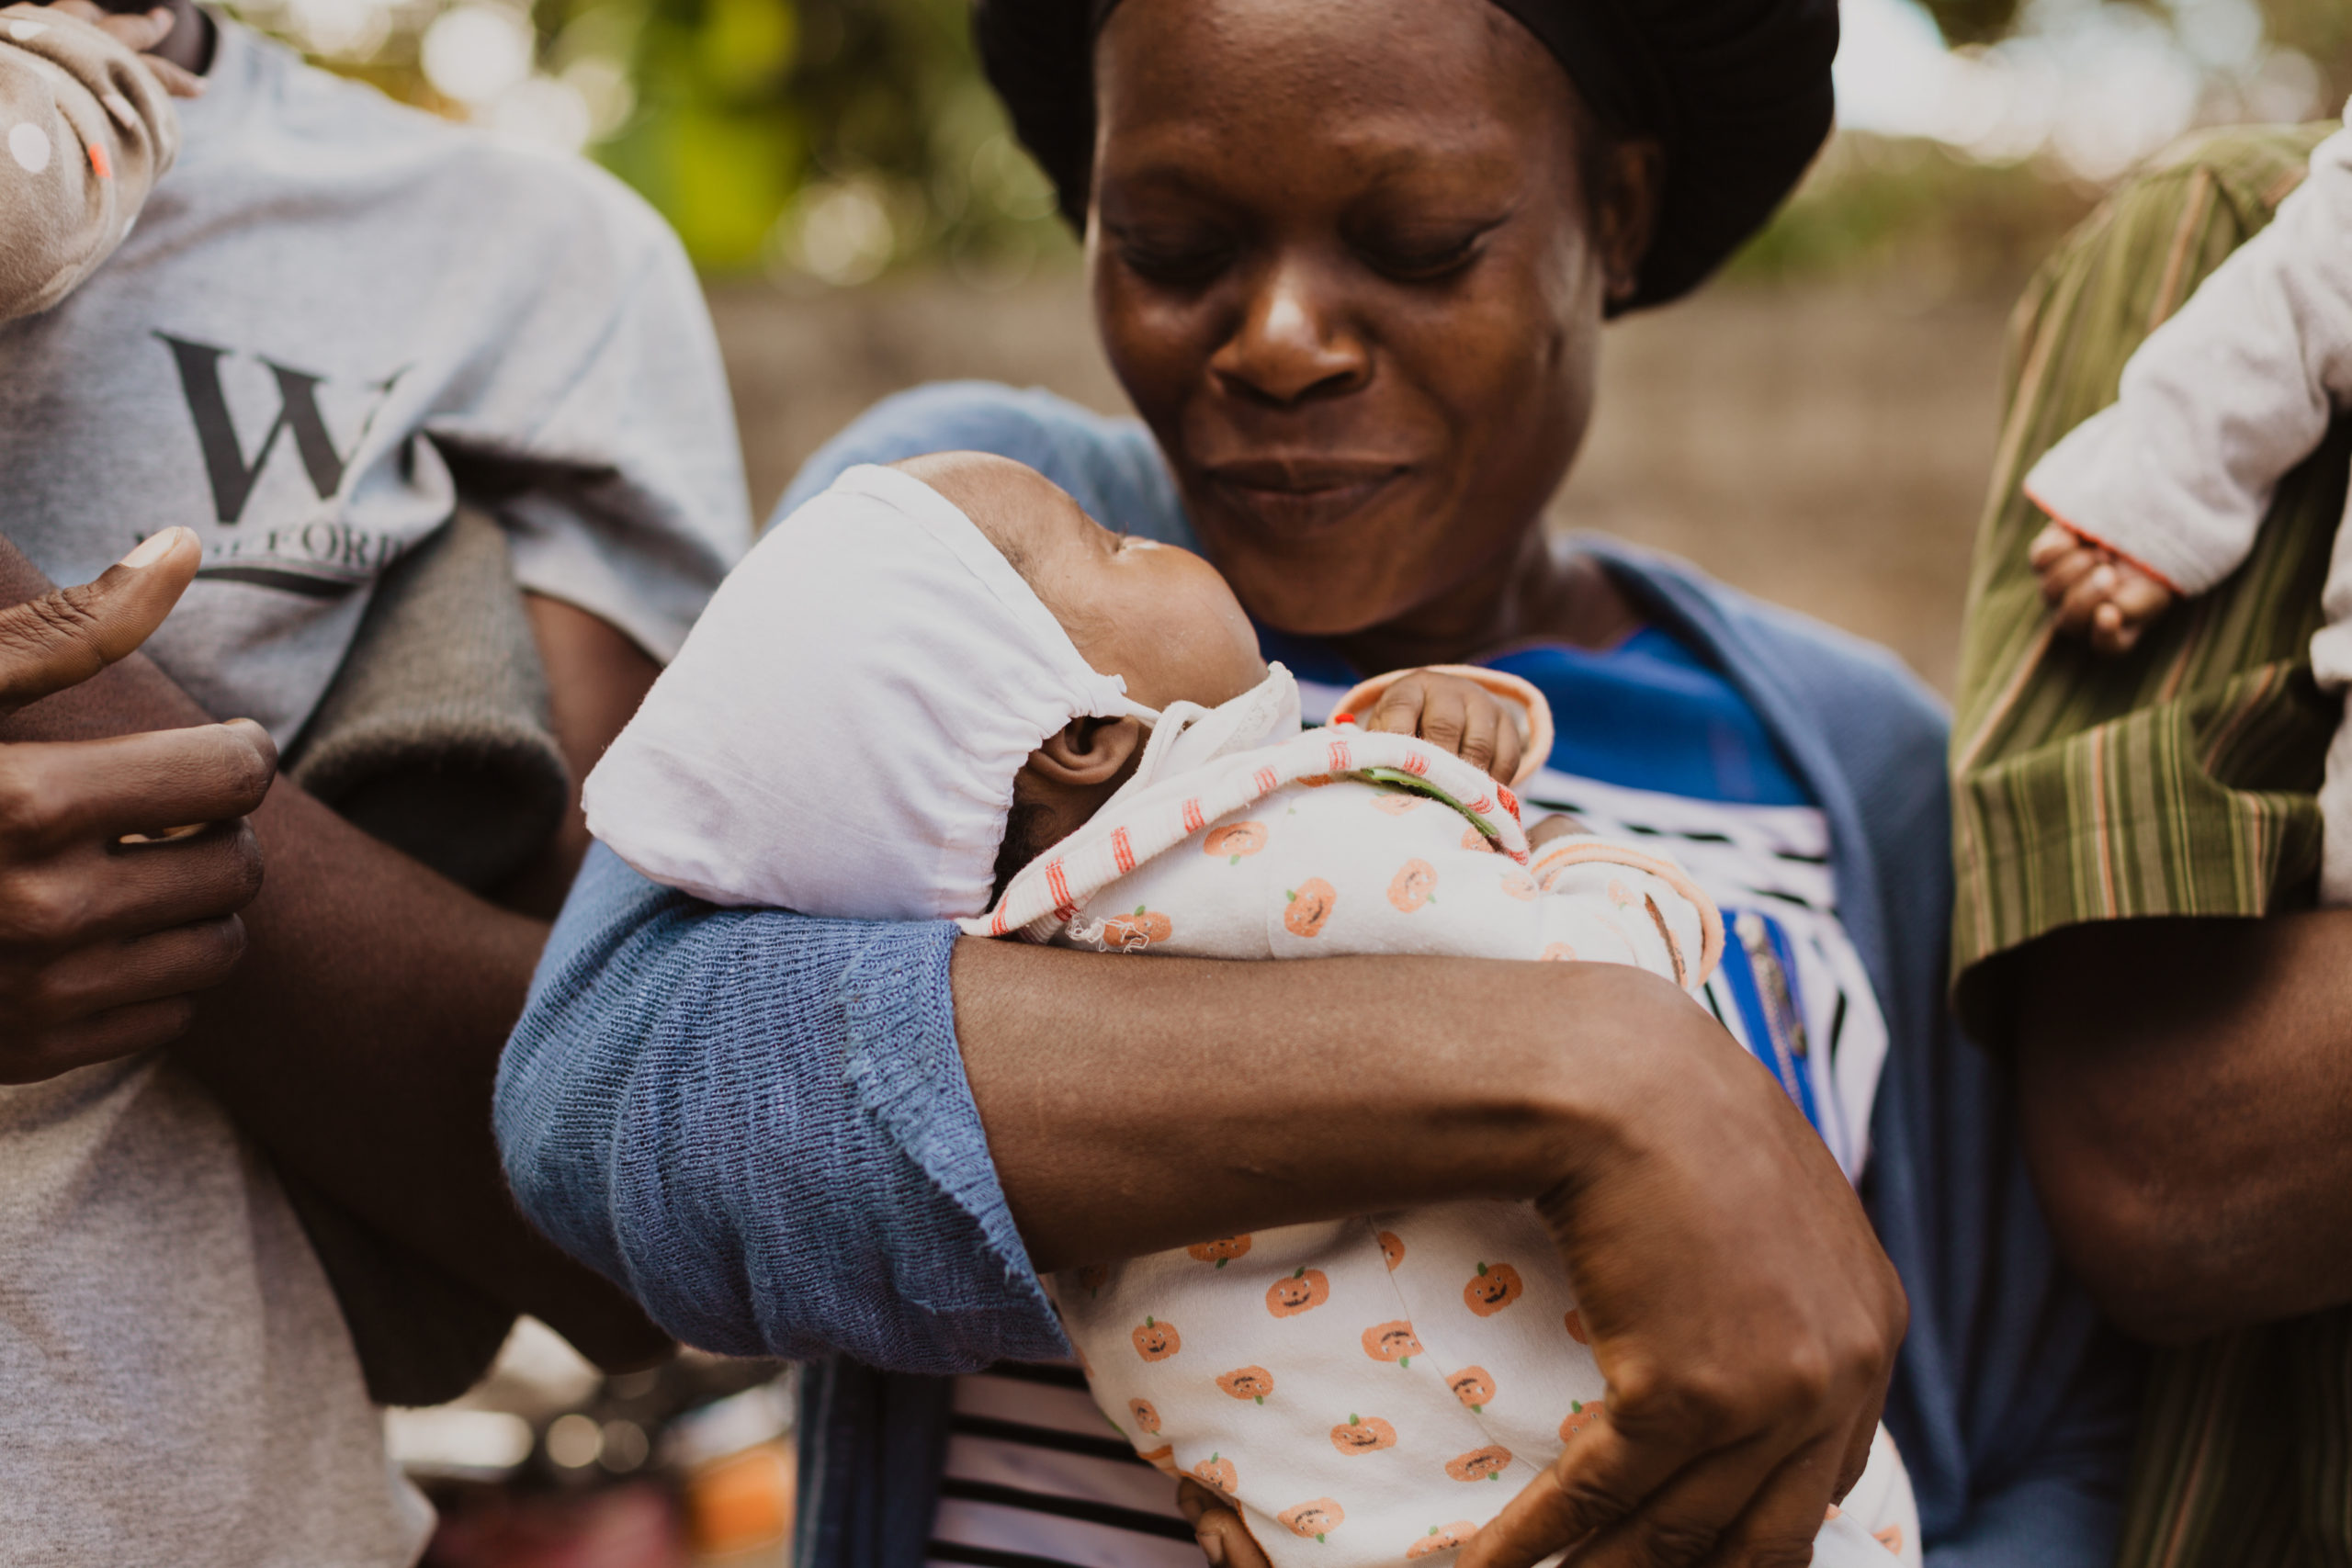 Humanitarian photographer photographs mother and child in Haiti